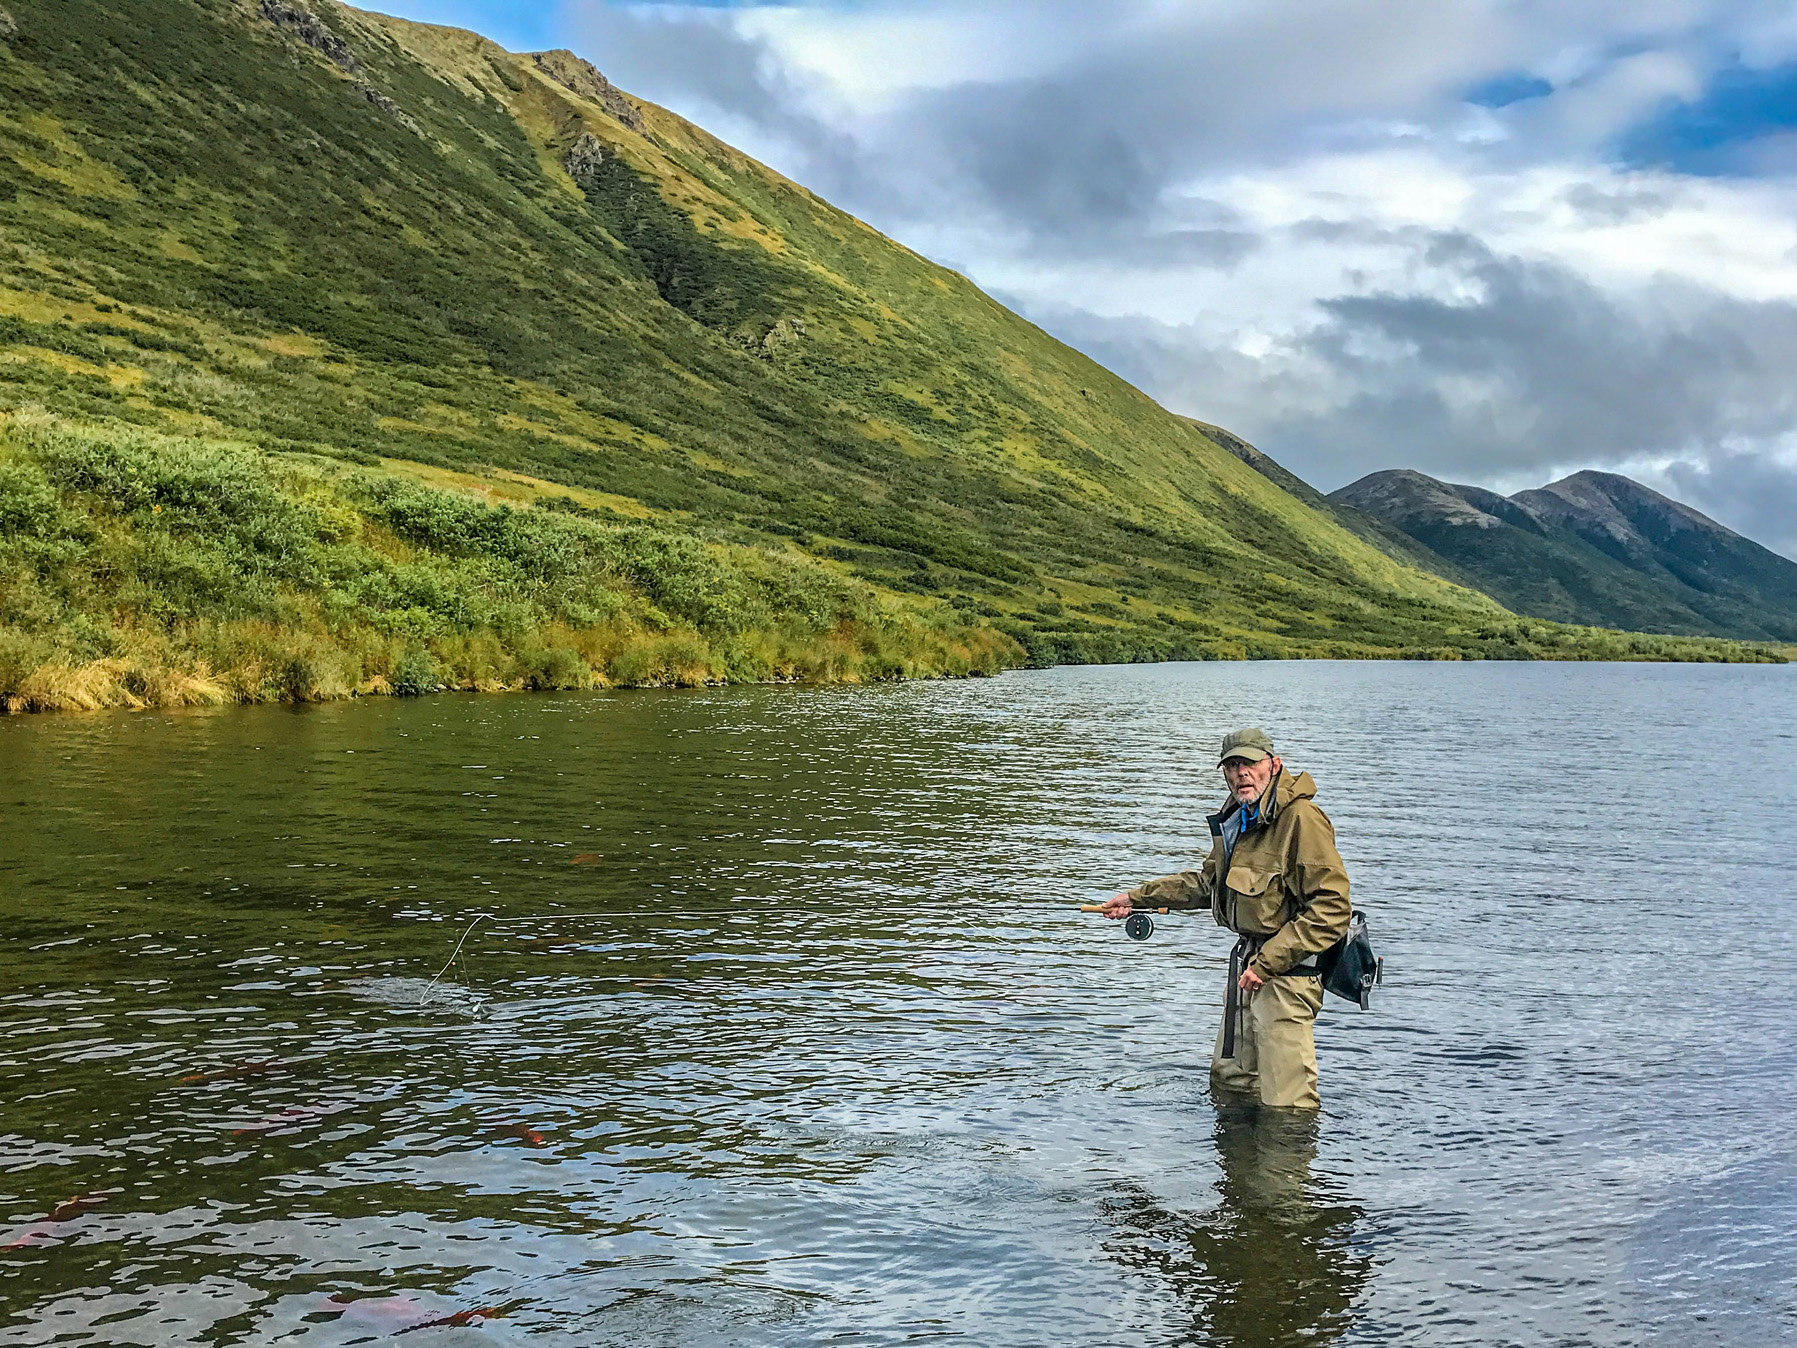 Fly Fishing Mouse patterns Alaska wilderness rainbow trout solitude adventure King Salmon